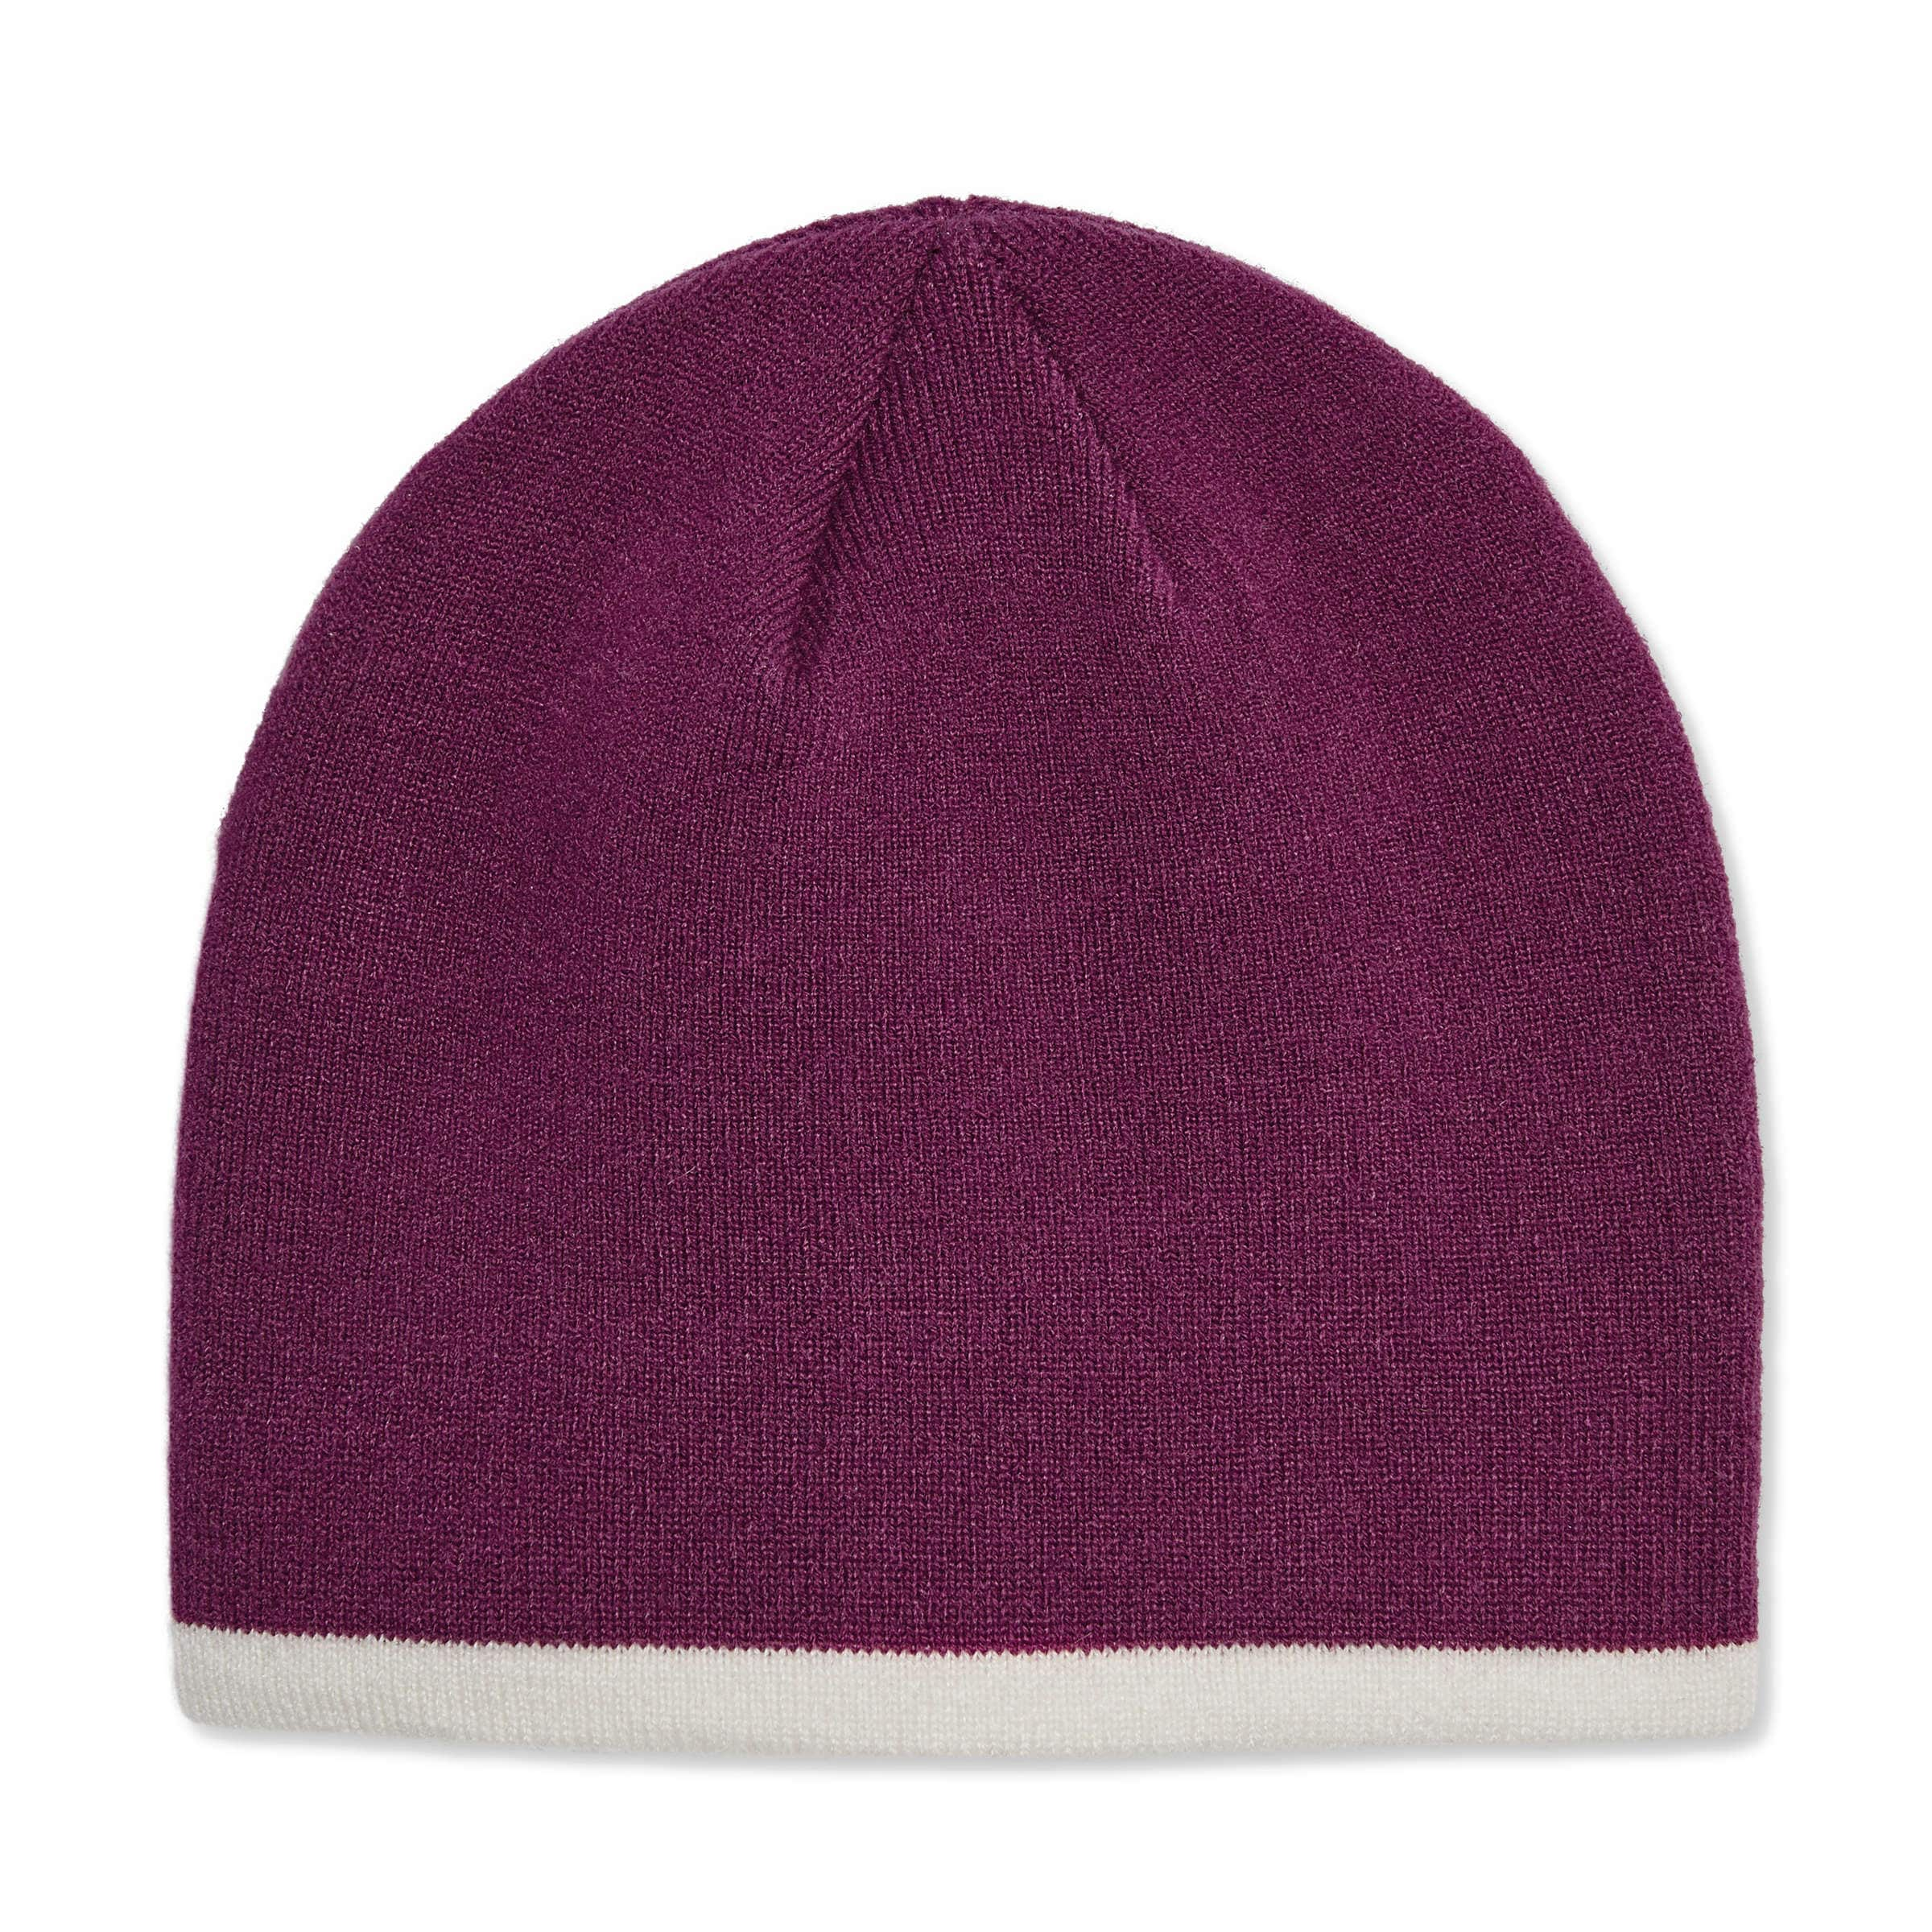 4d9c34c3dd7 Toddler Girls  Essential Beanie in Dark Fuchsia from Joe Fresh